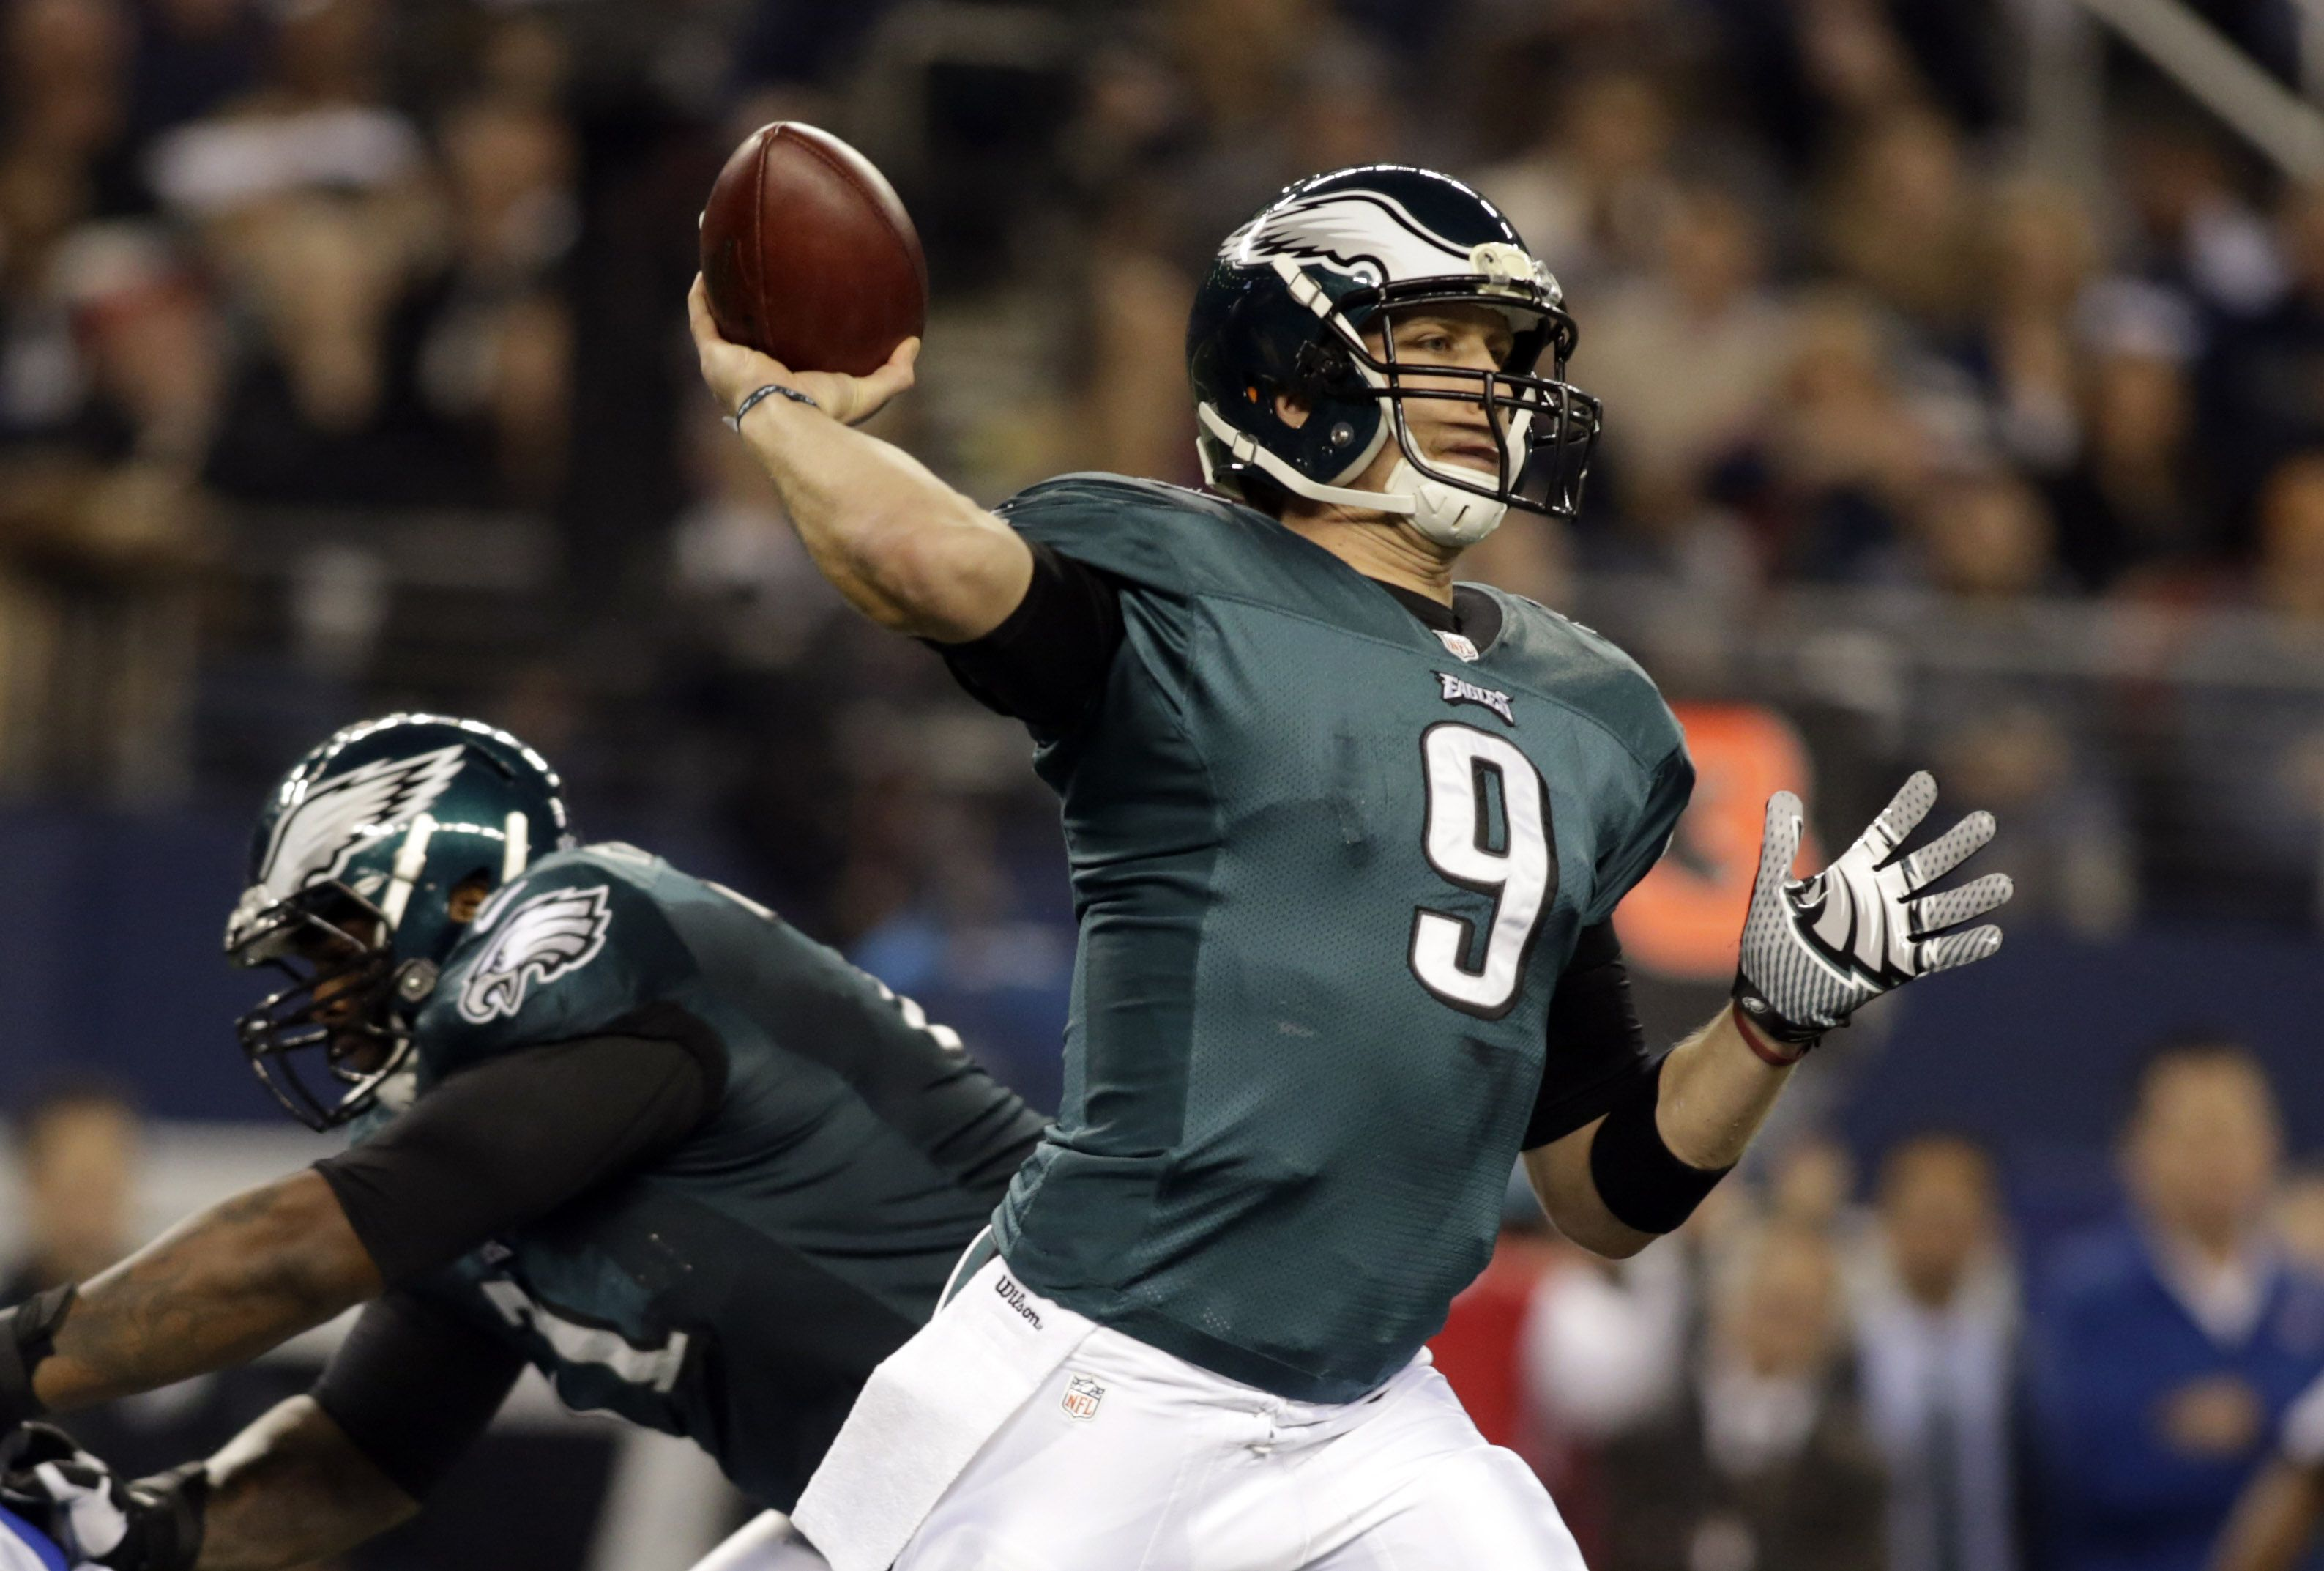 Download The Latest Nick Foles Hd Wallpapers From Wallpapers111 Com Celebrities Male